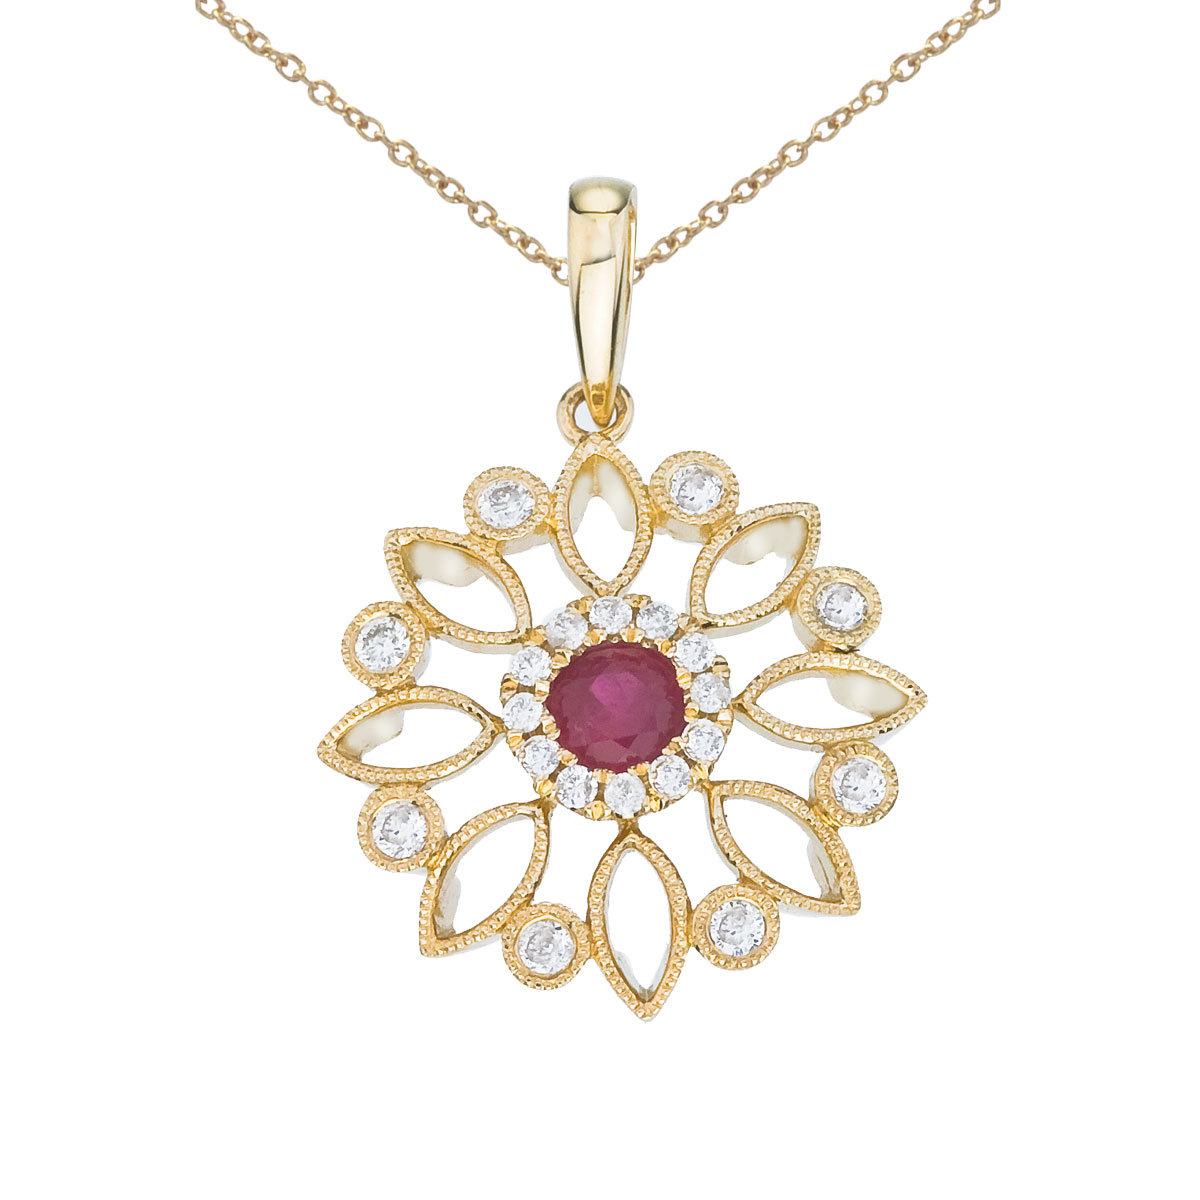 Flower shaped pendant set in 14k yellow gold with a radiant 4 mm ruby and .19 ct diamonds.